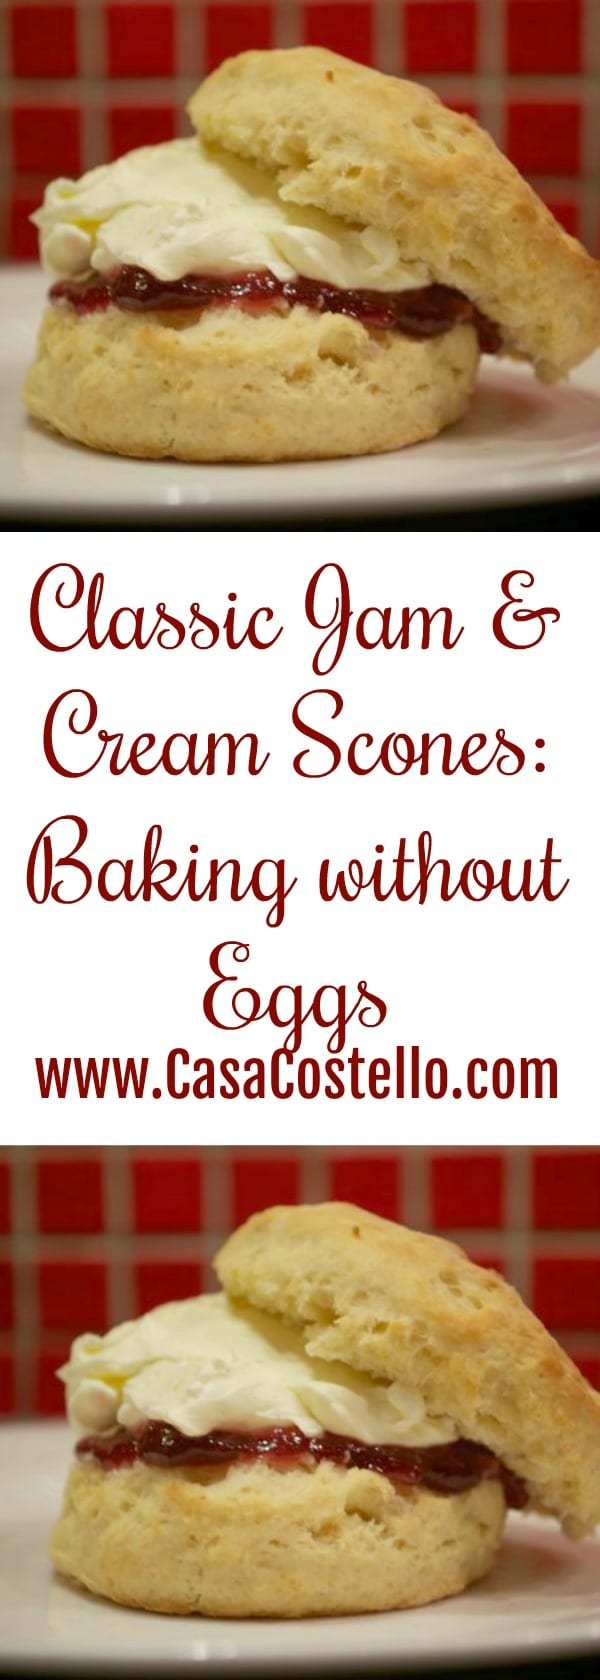 Classic Jam & Cream Scones: Baking without Eggs